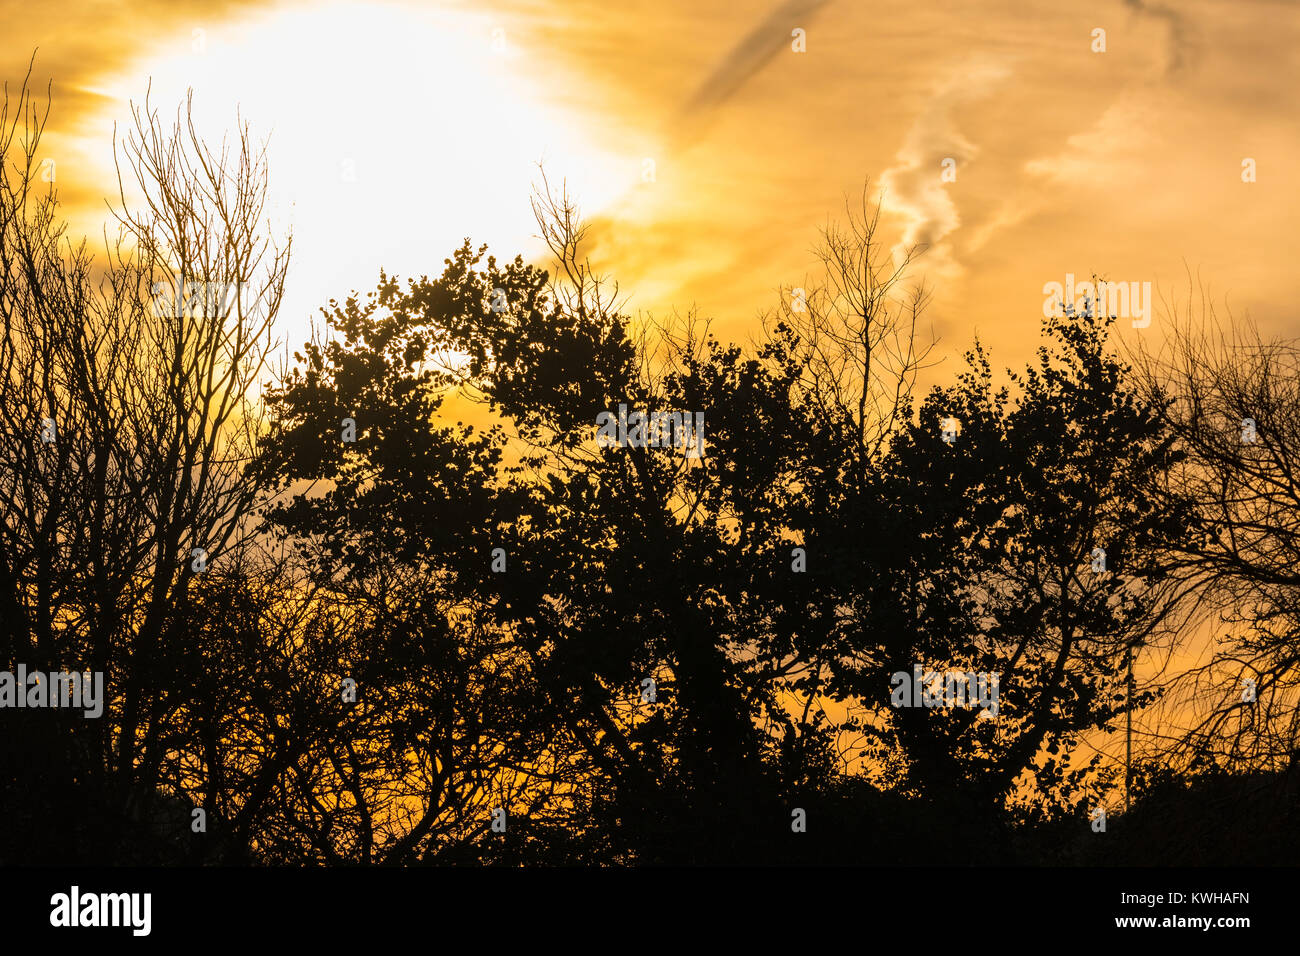 Sun rising through trees in Winter in the UK. - Stock Image